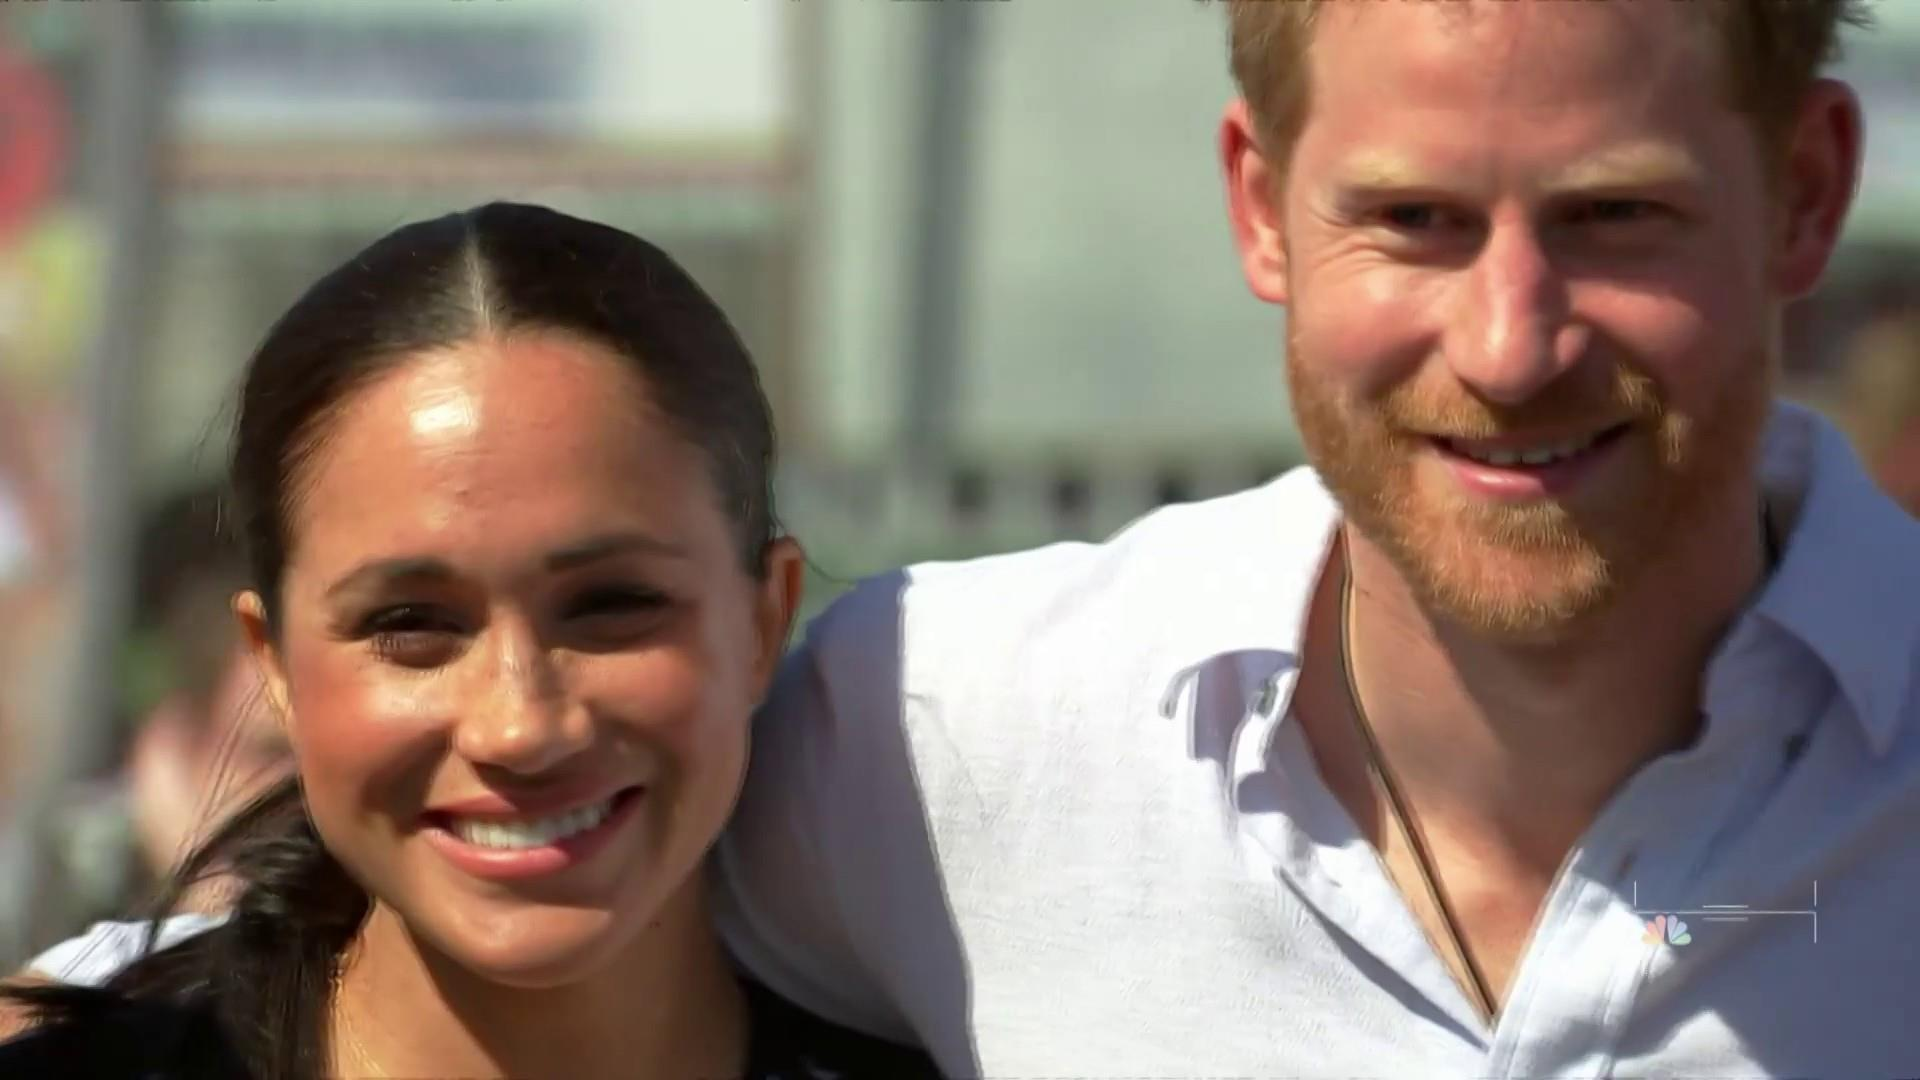 Meghan and Harry get candid about tabloids, Prince William